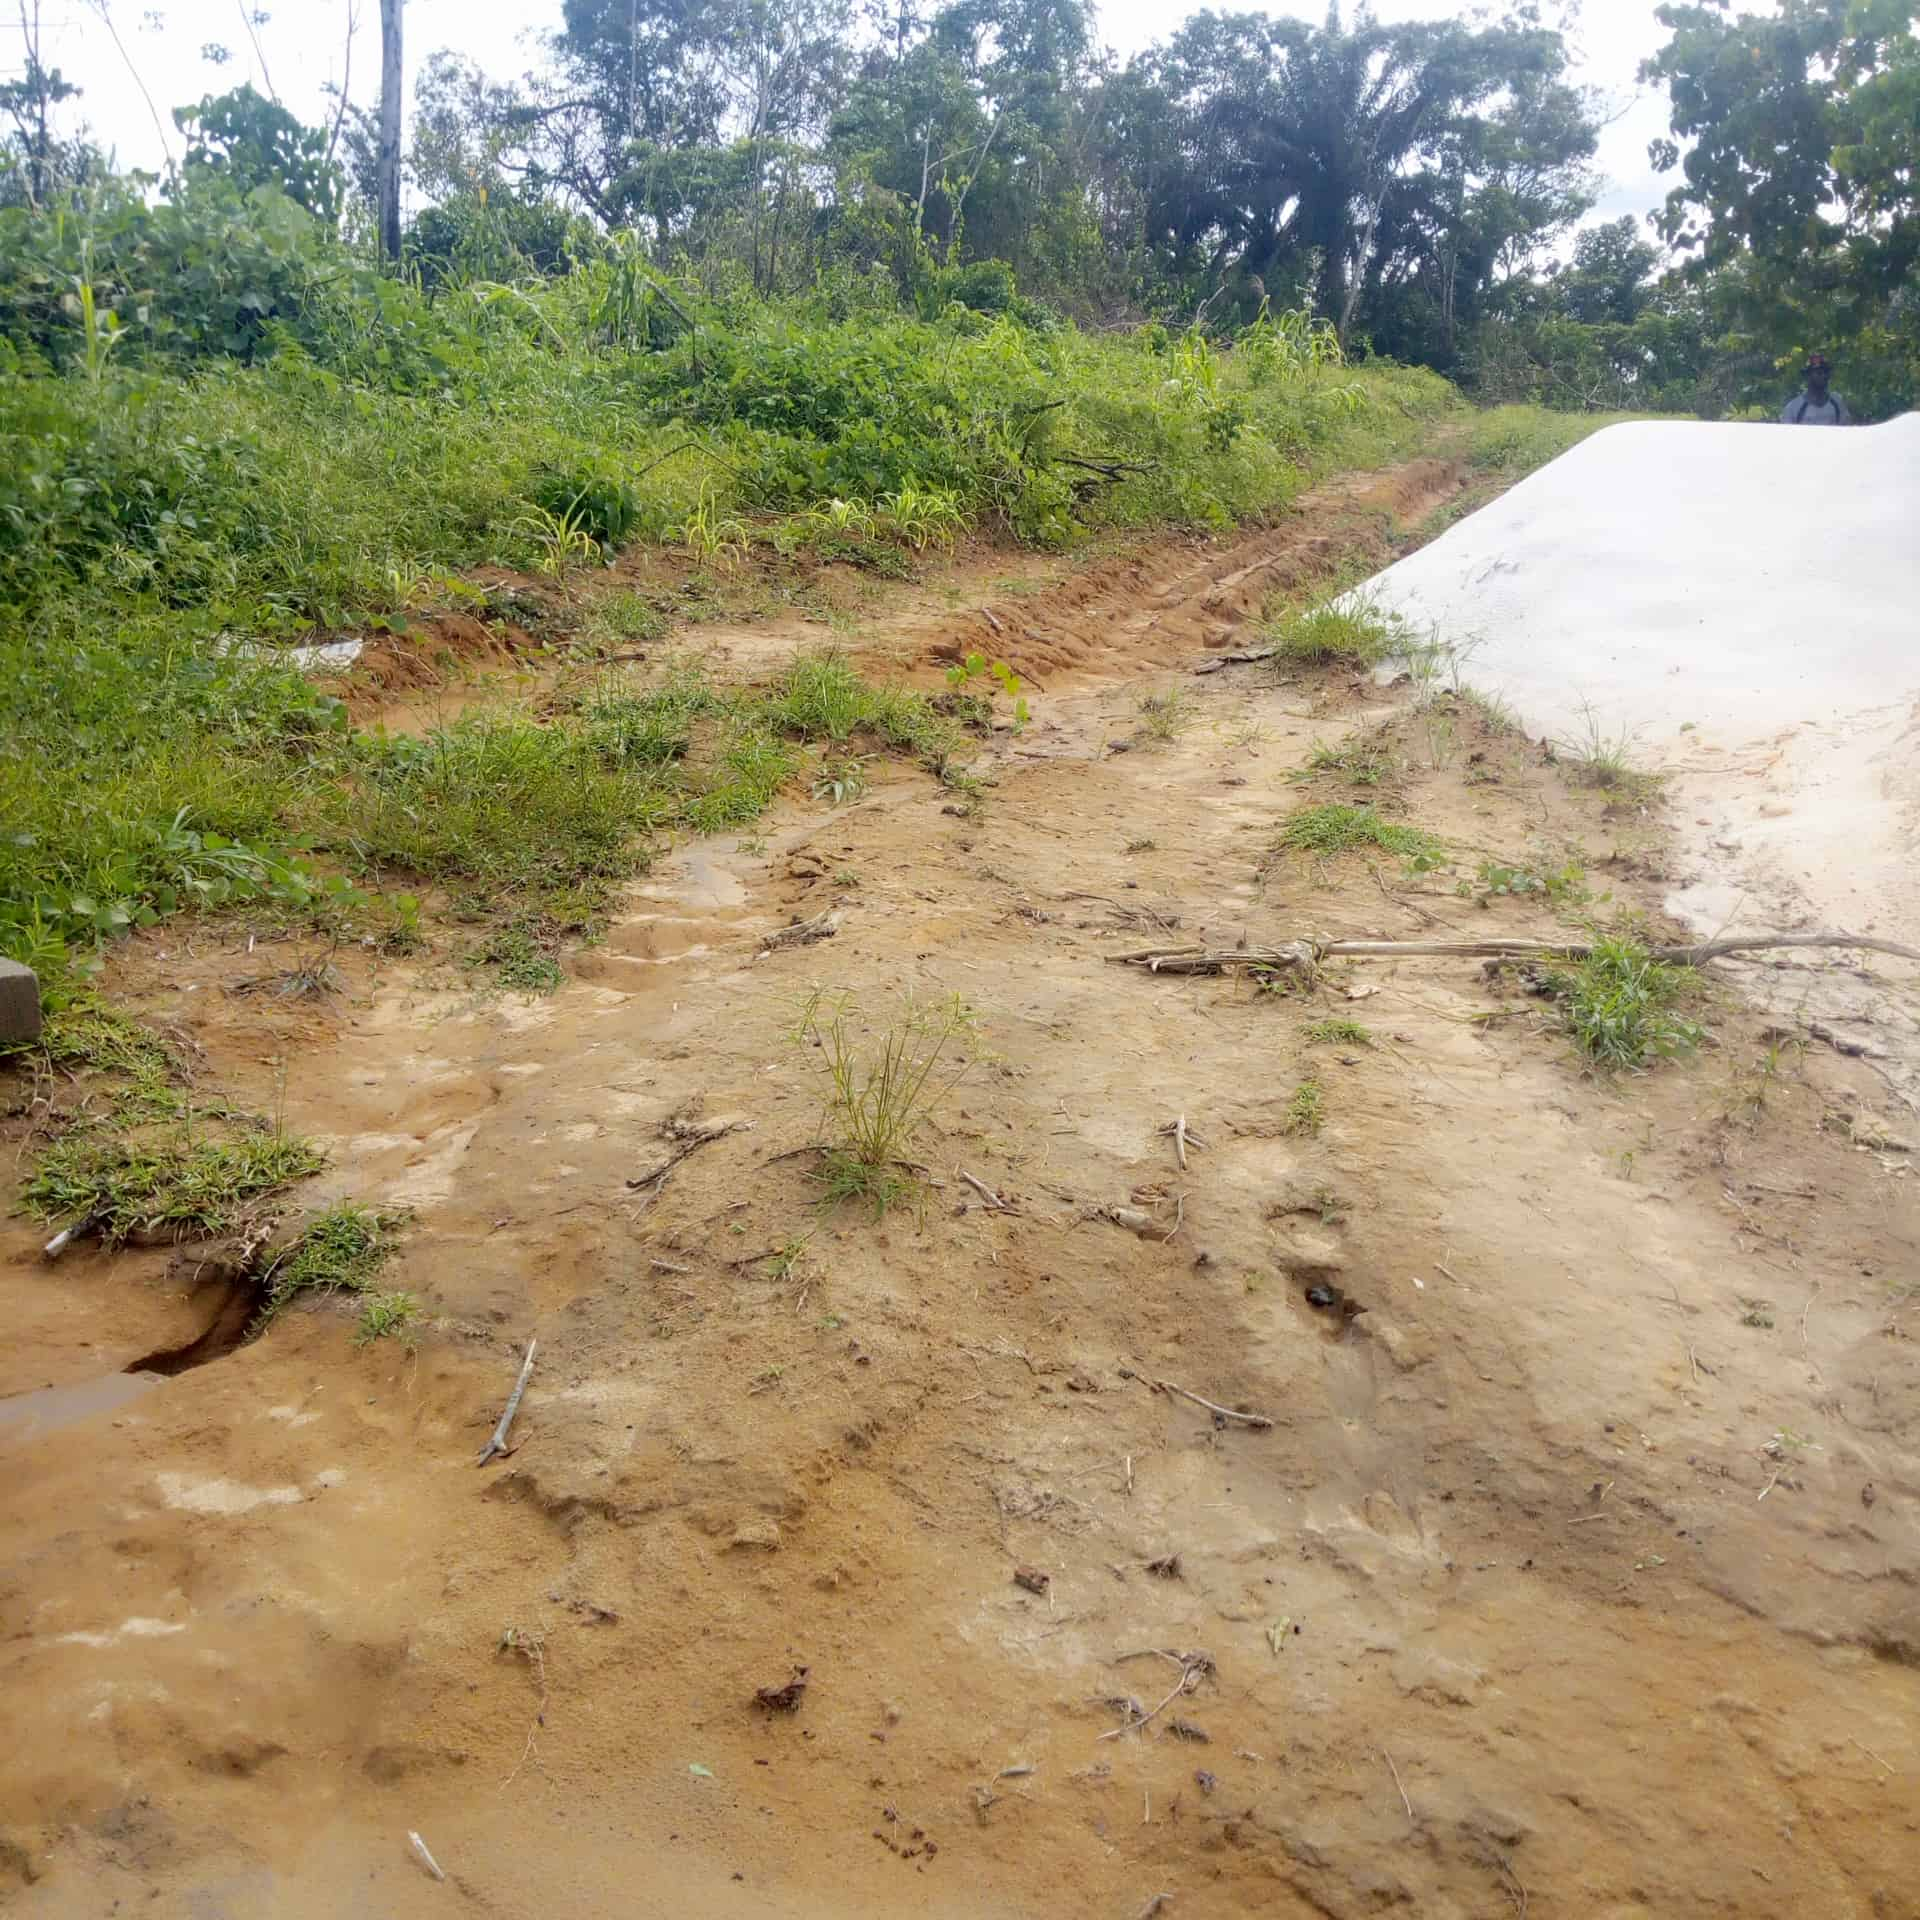 Land for sale at Douala, PK 24, Barrière de police - 2000 m2 - 7 000 000 FCFA